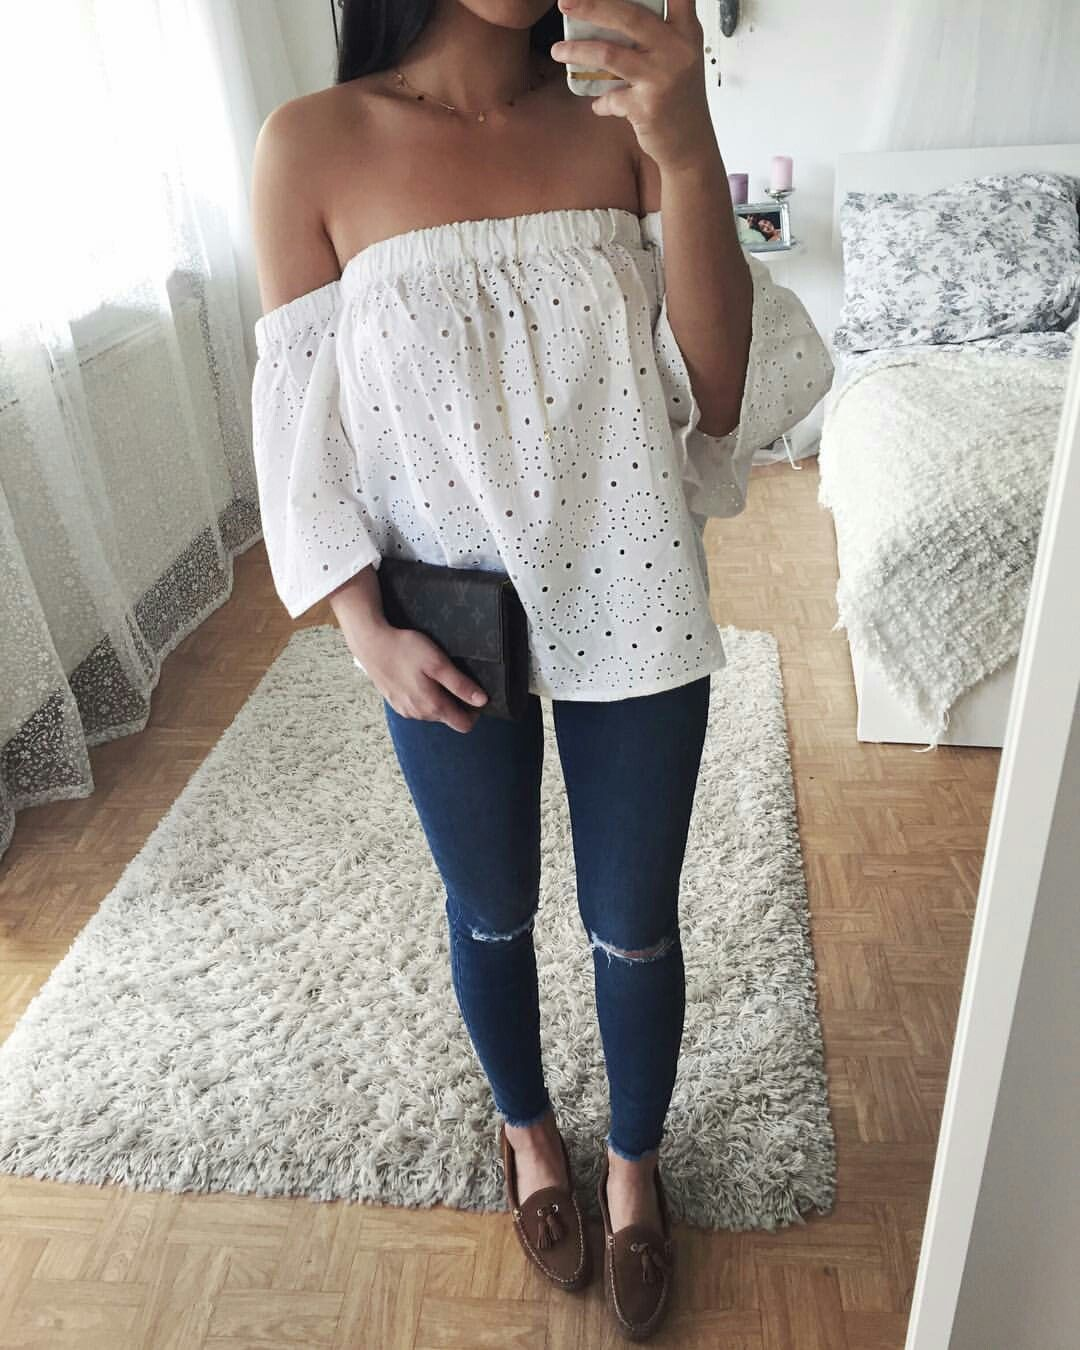 Find More at => http://feedproxy.google.com/~r/amazingoutfits/~3/0w4kIm-e9j4/AmazingOutfits.page